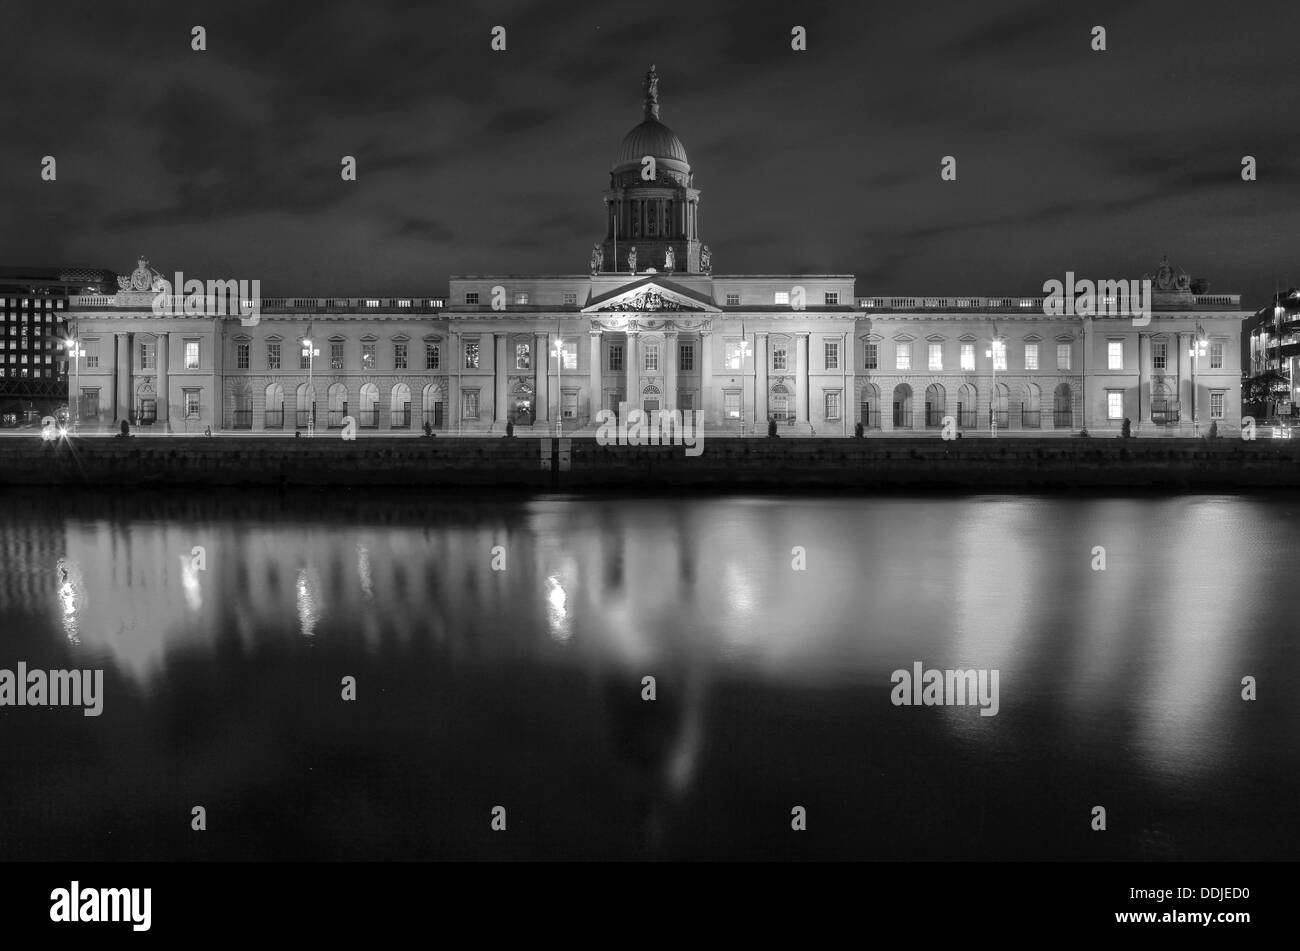 The Custom house reflected on the Liffey at night time in Black and white - Stock Image